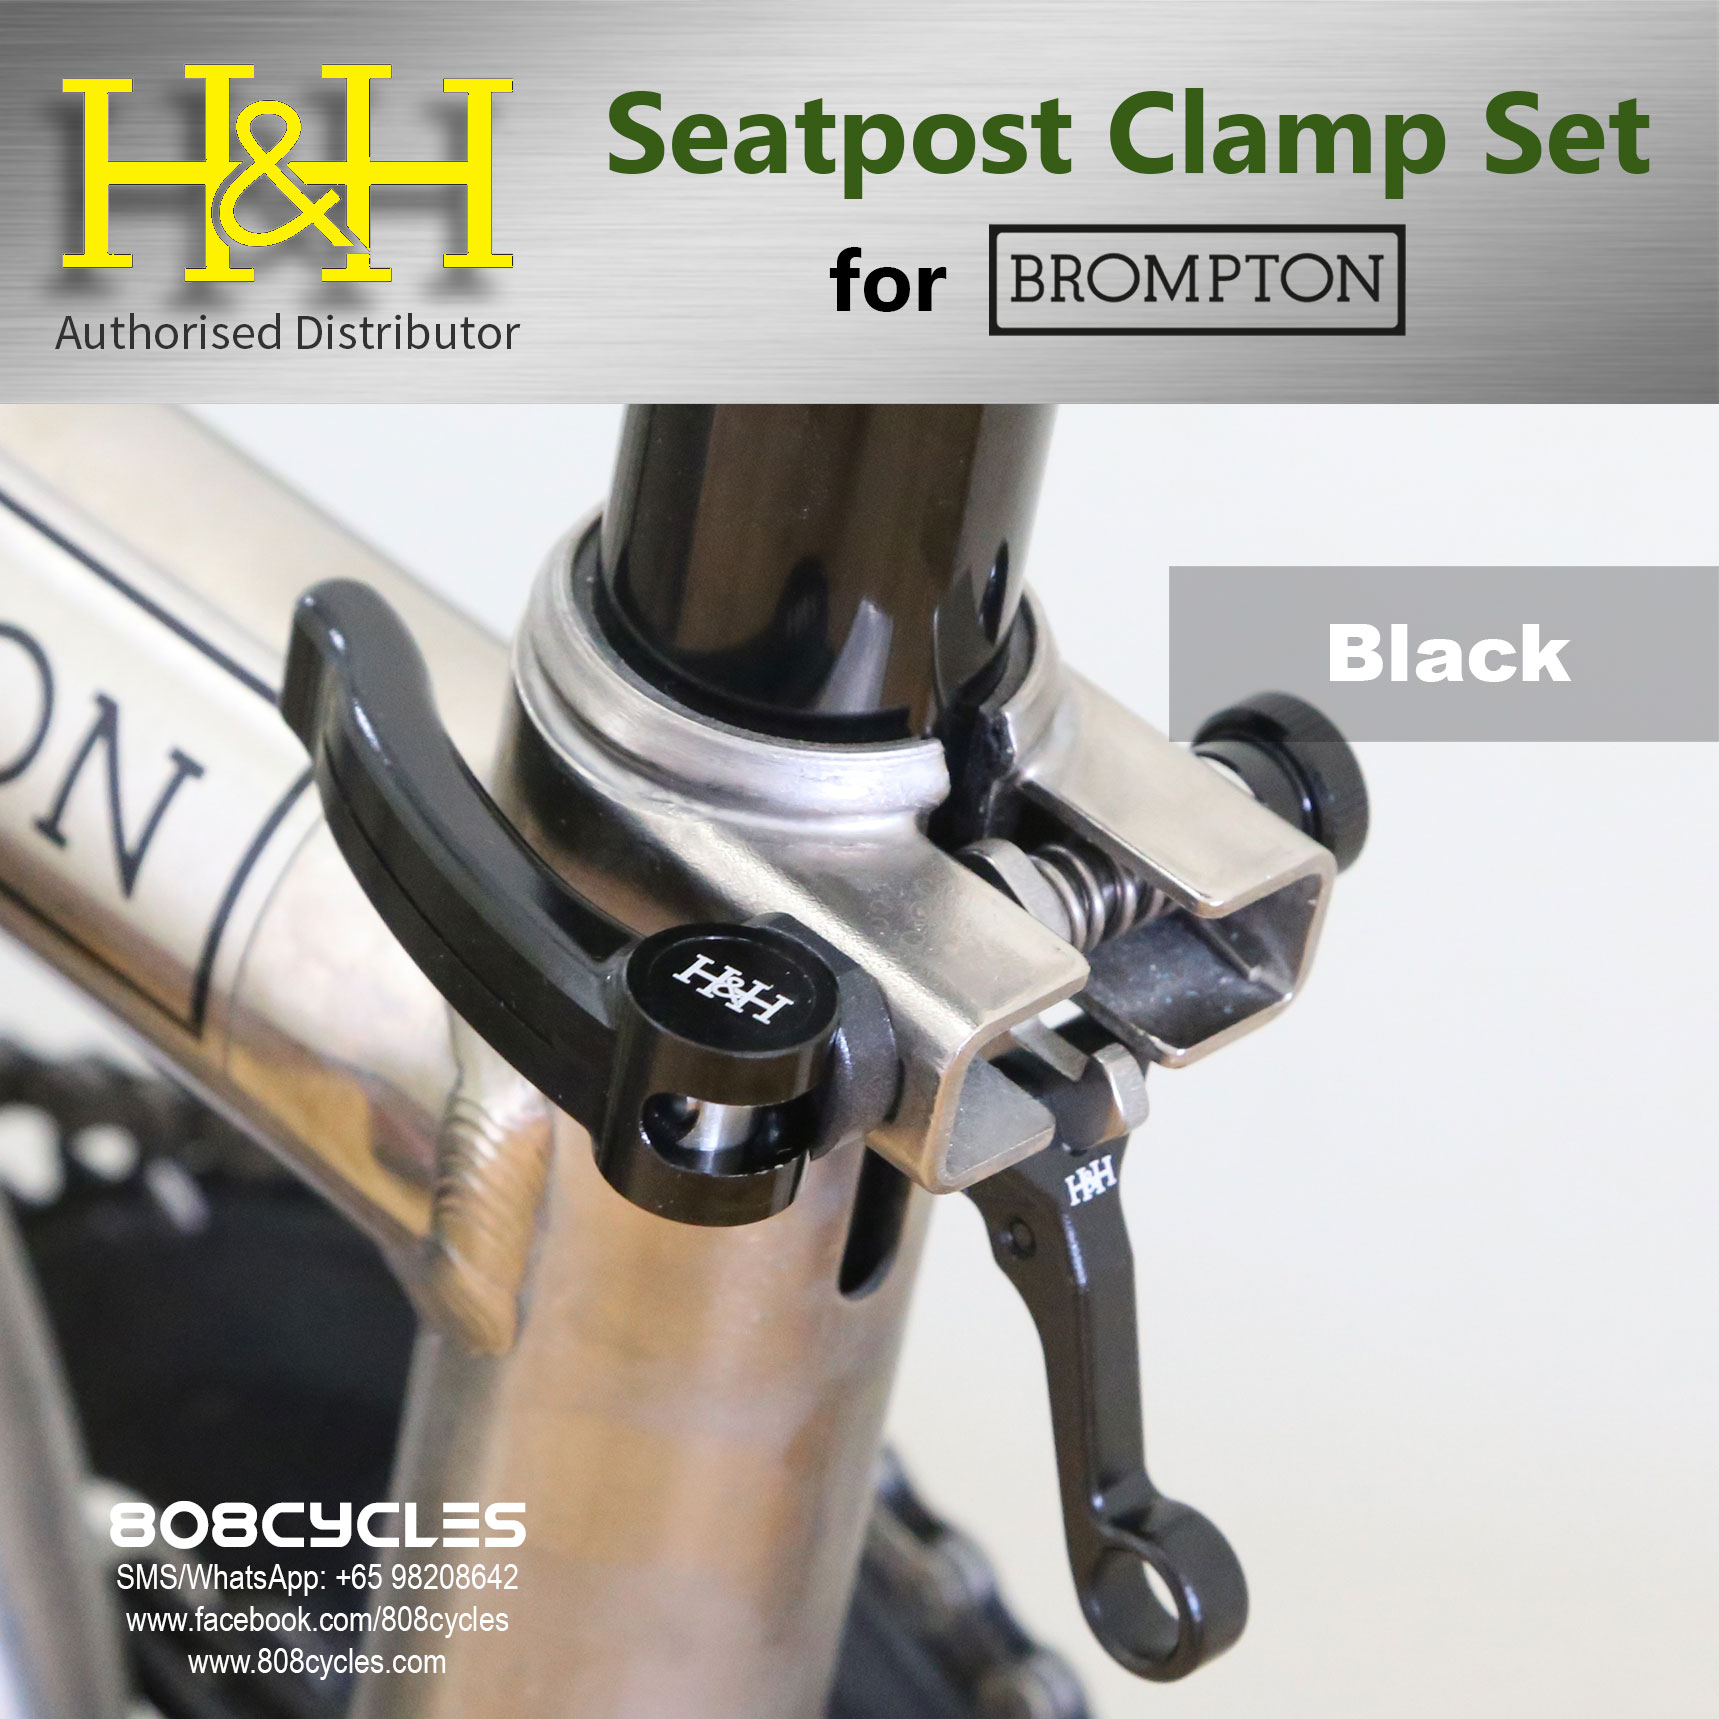 Multi-S Brompton Seatpost Clamp with Rear Frame Hook